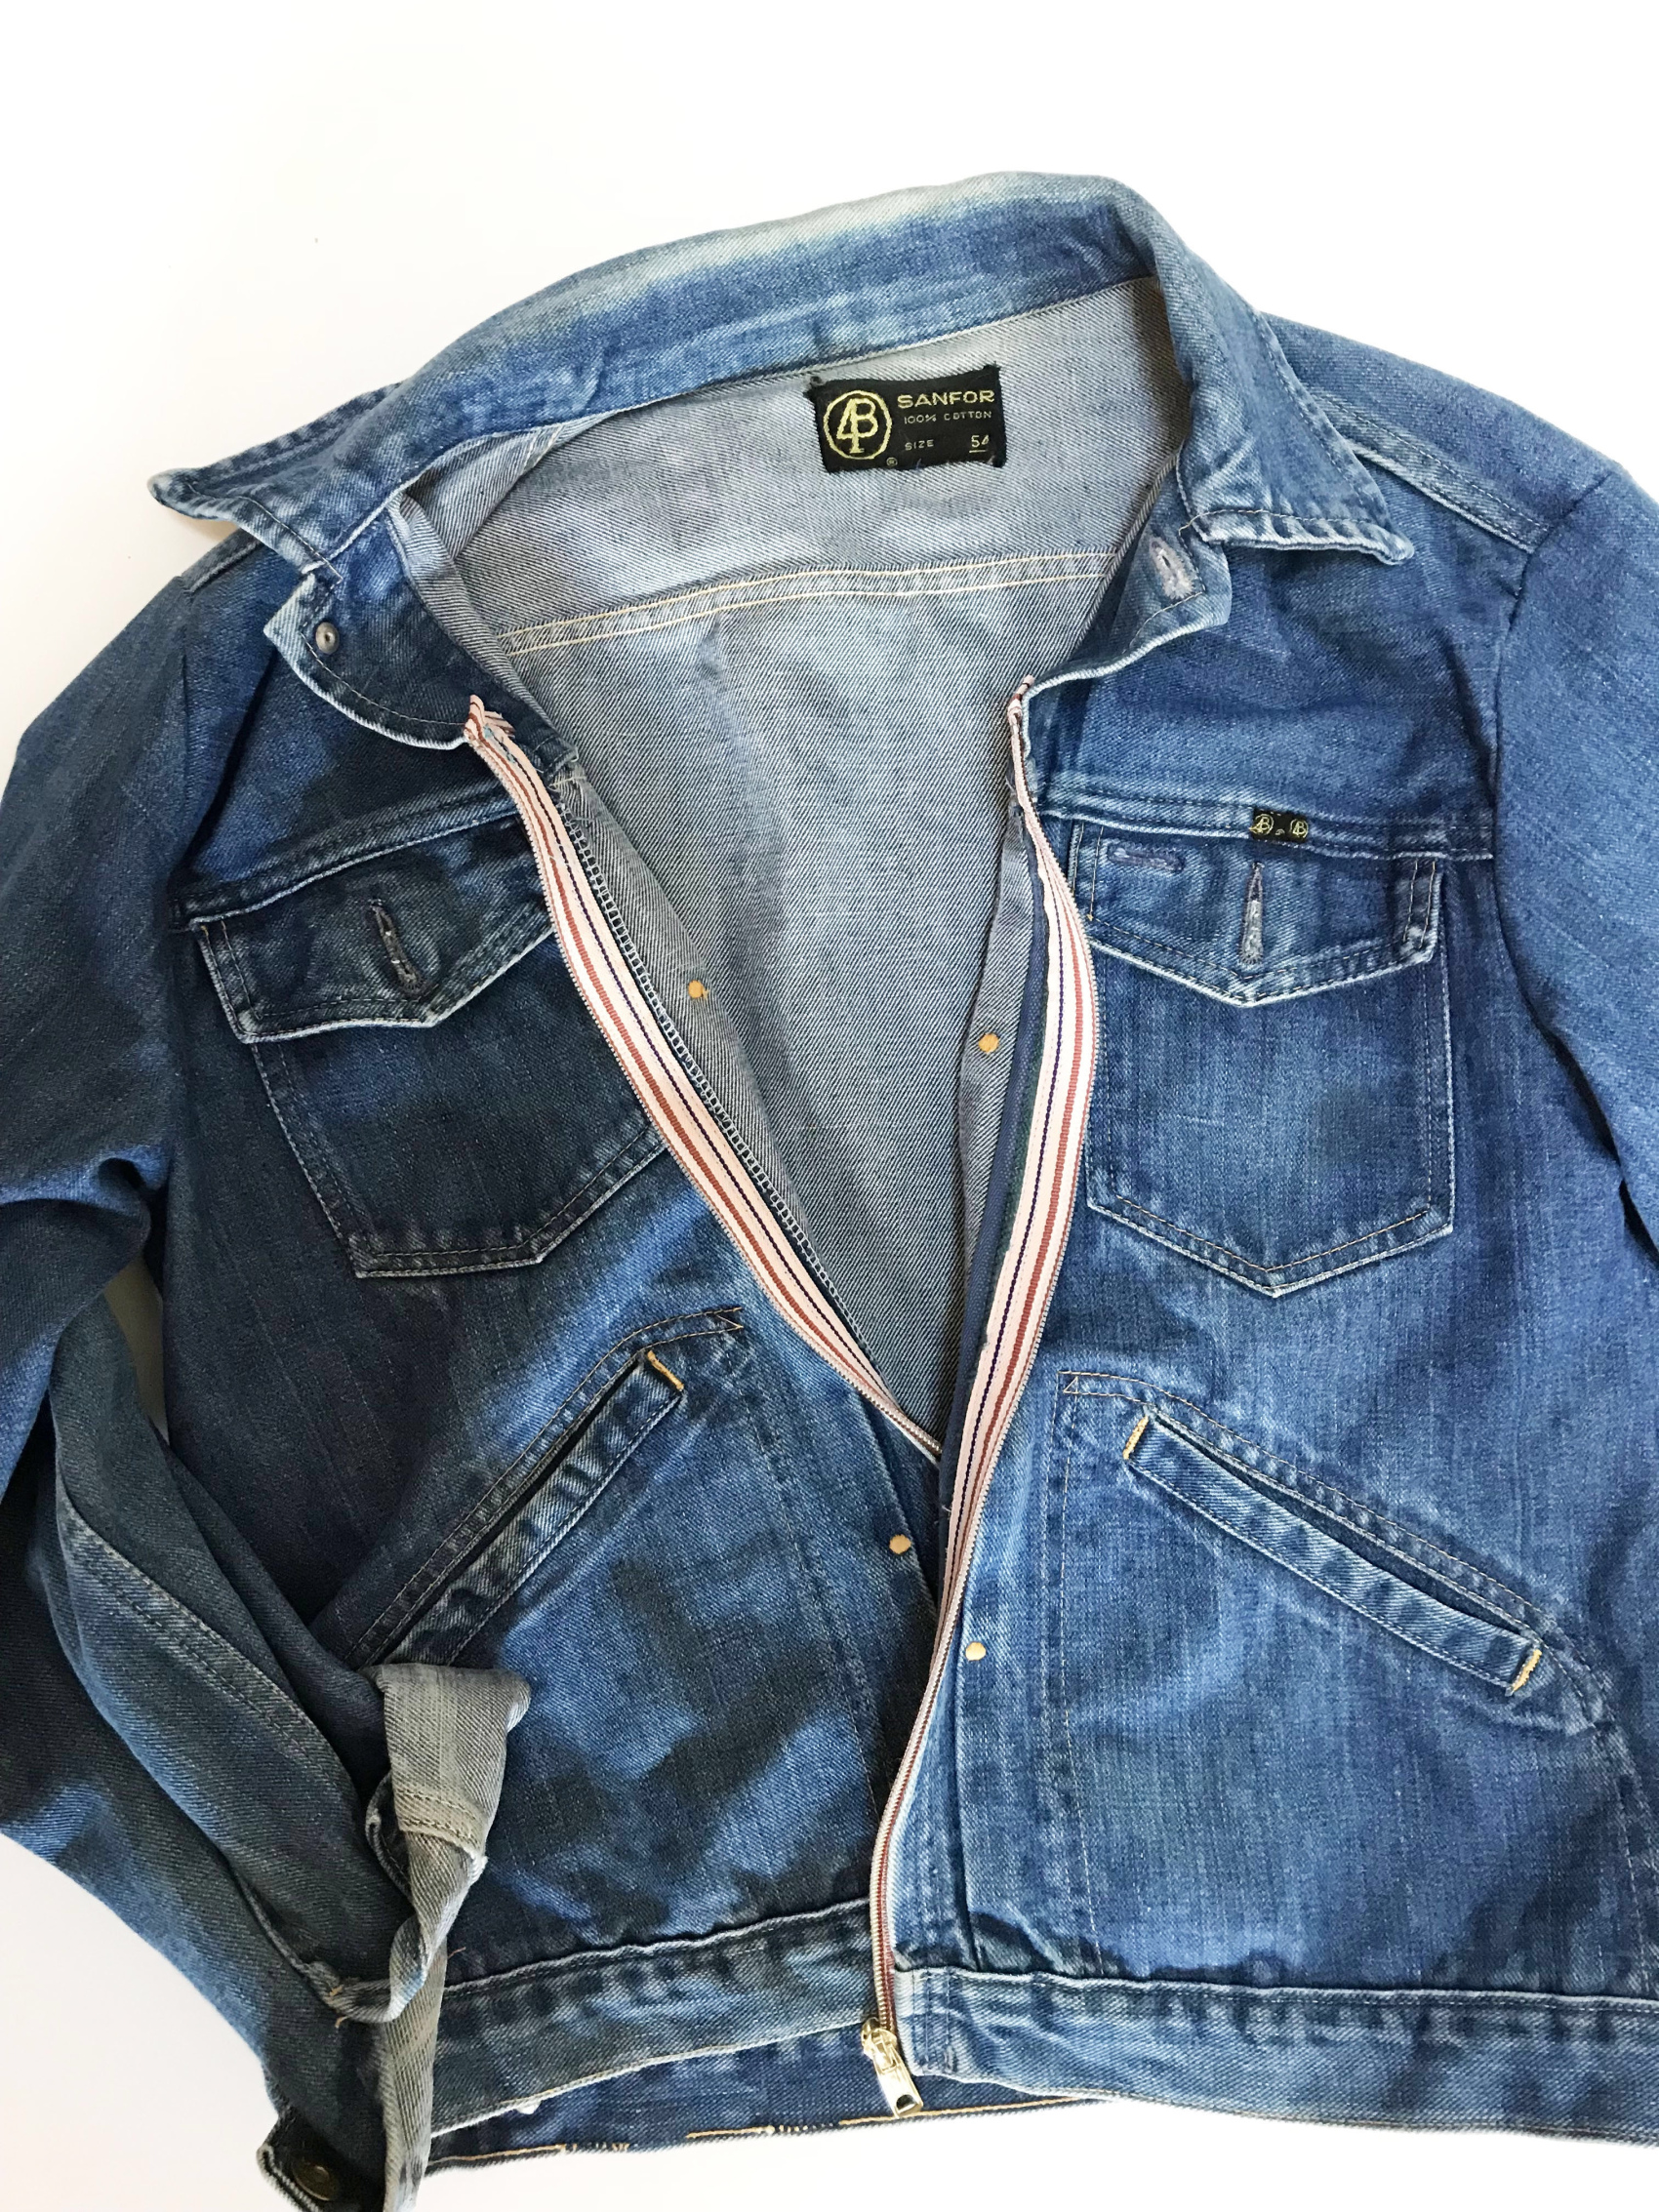 old denim jacket